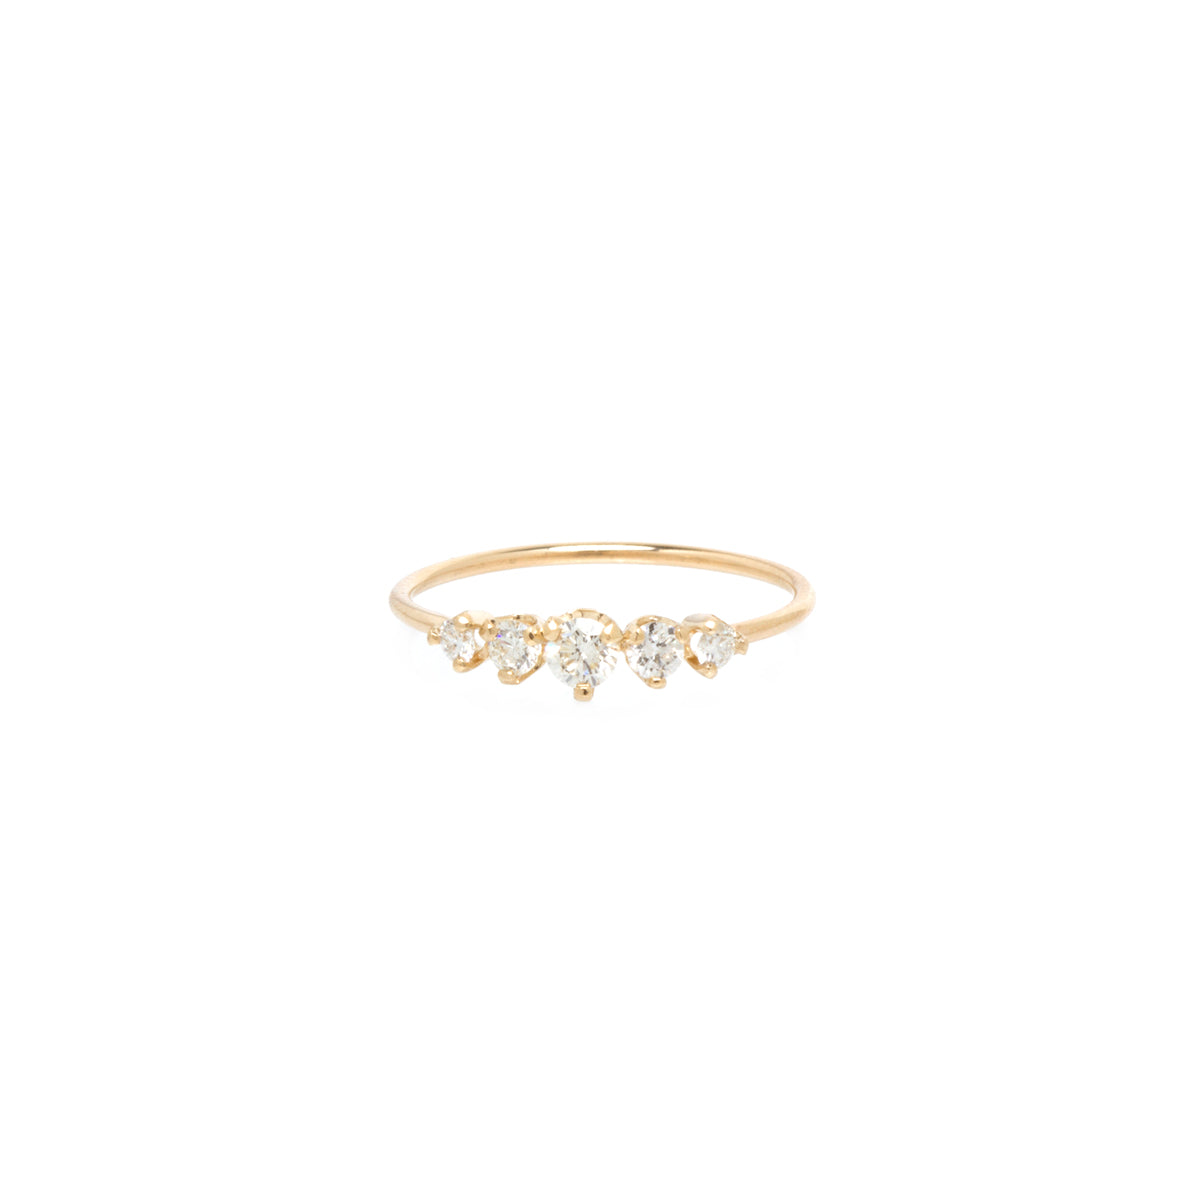 14k graduated prong set 5 diamond ring